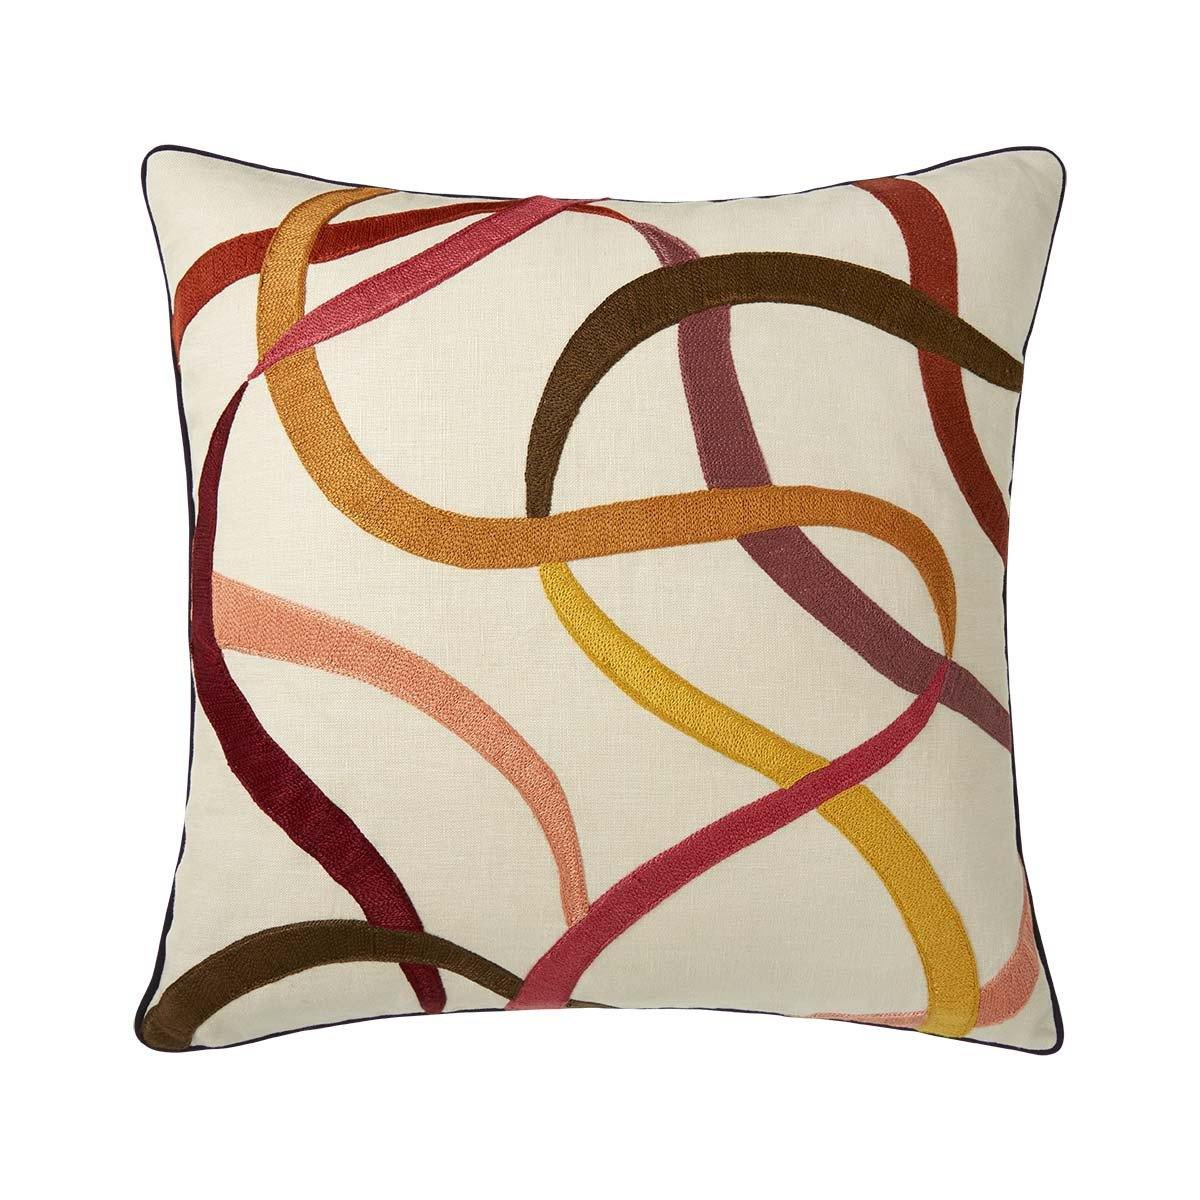 Liesse Amarante Decorative Pillow by Iosis